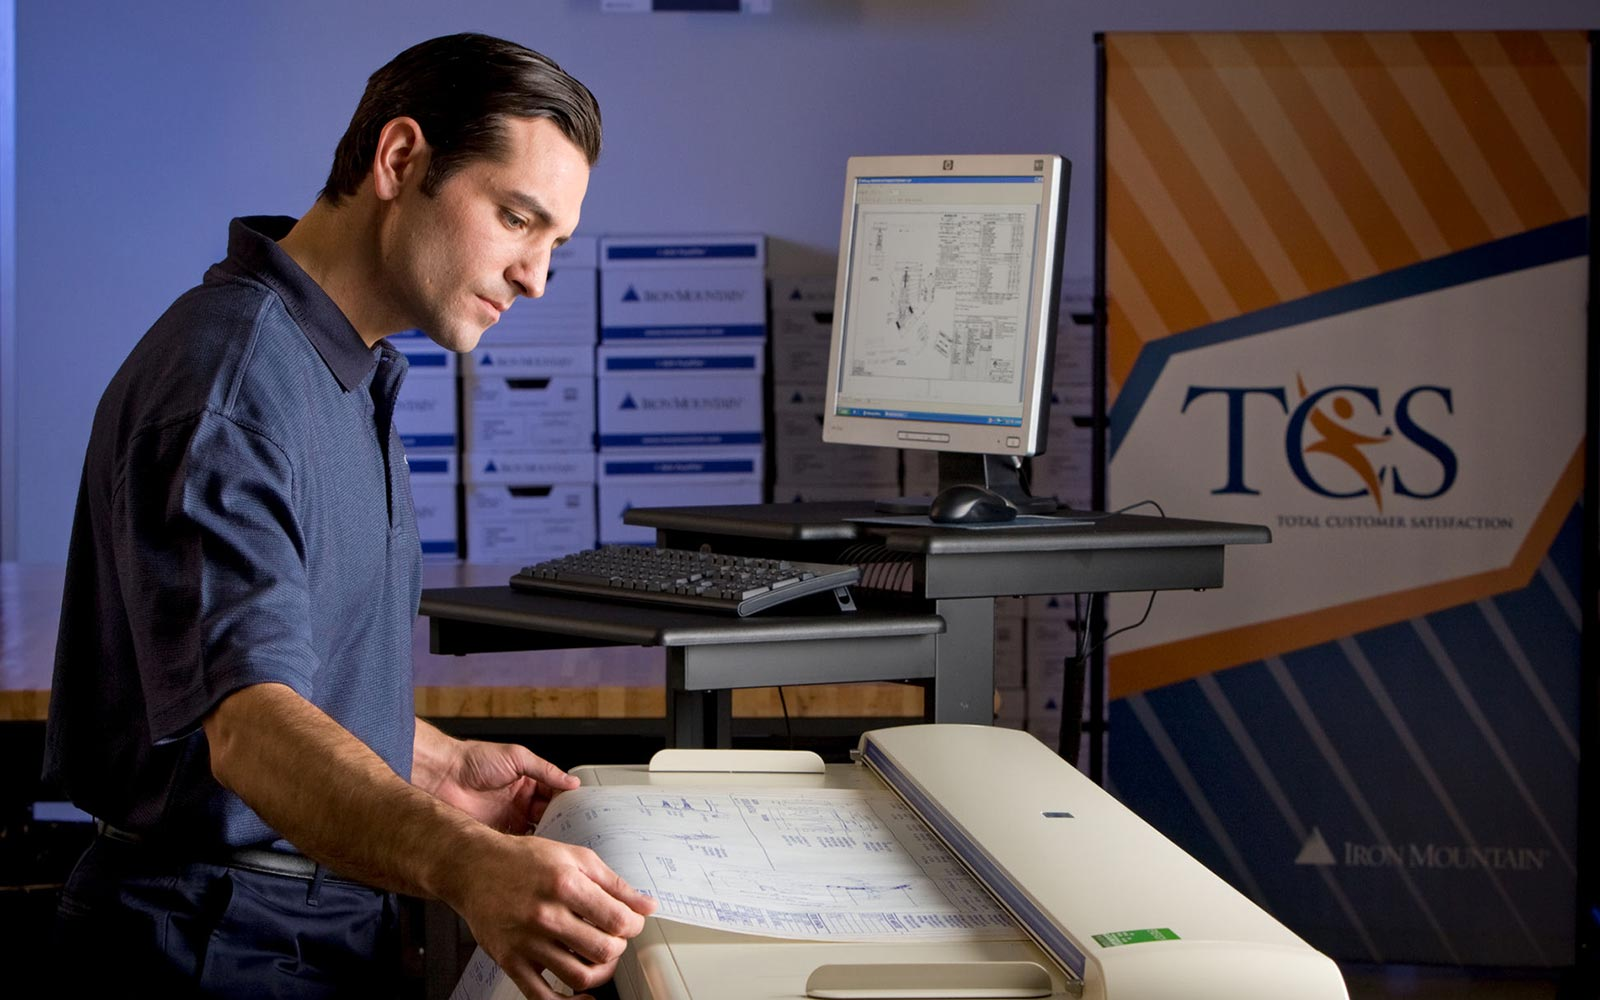 image on demand banner - iron mountain employee scanning document